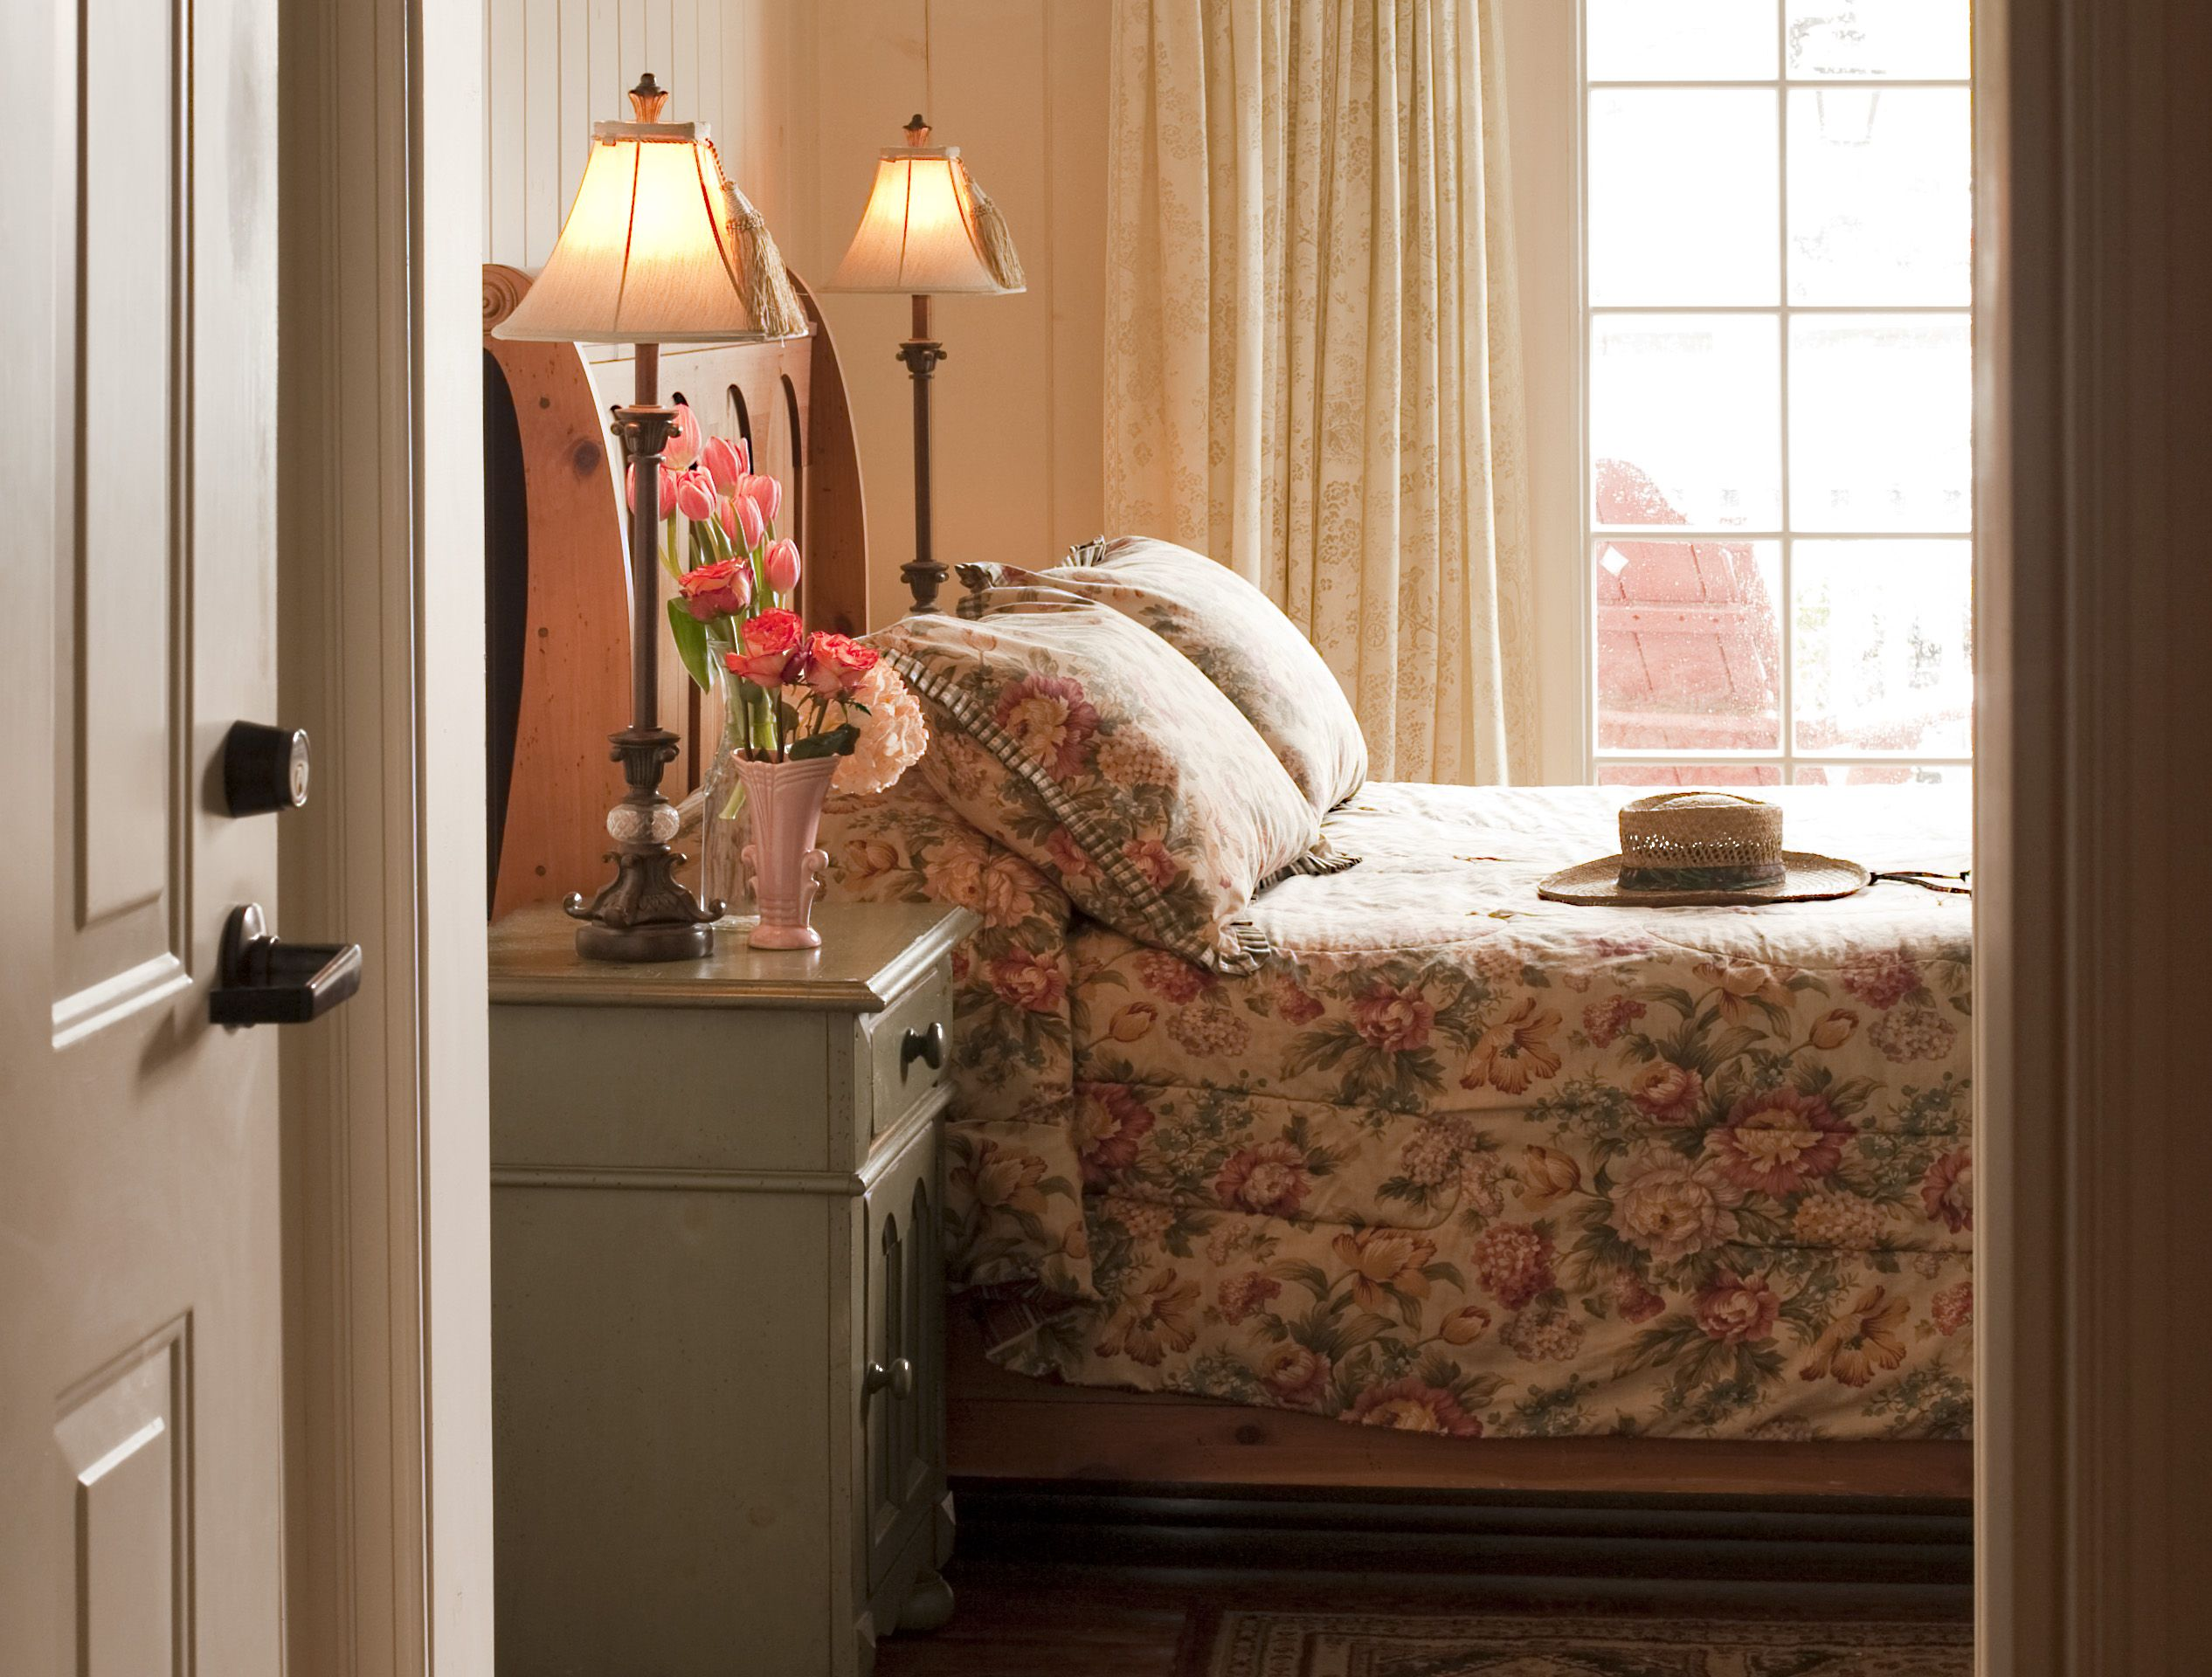 The Courtyard Room, with semi private deck and it's quaint style make this a lovely room.